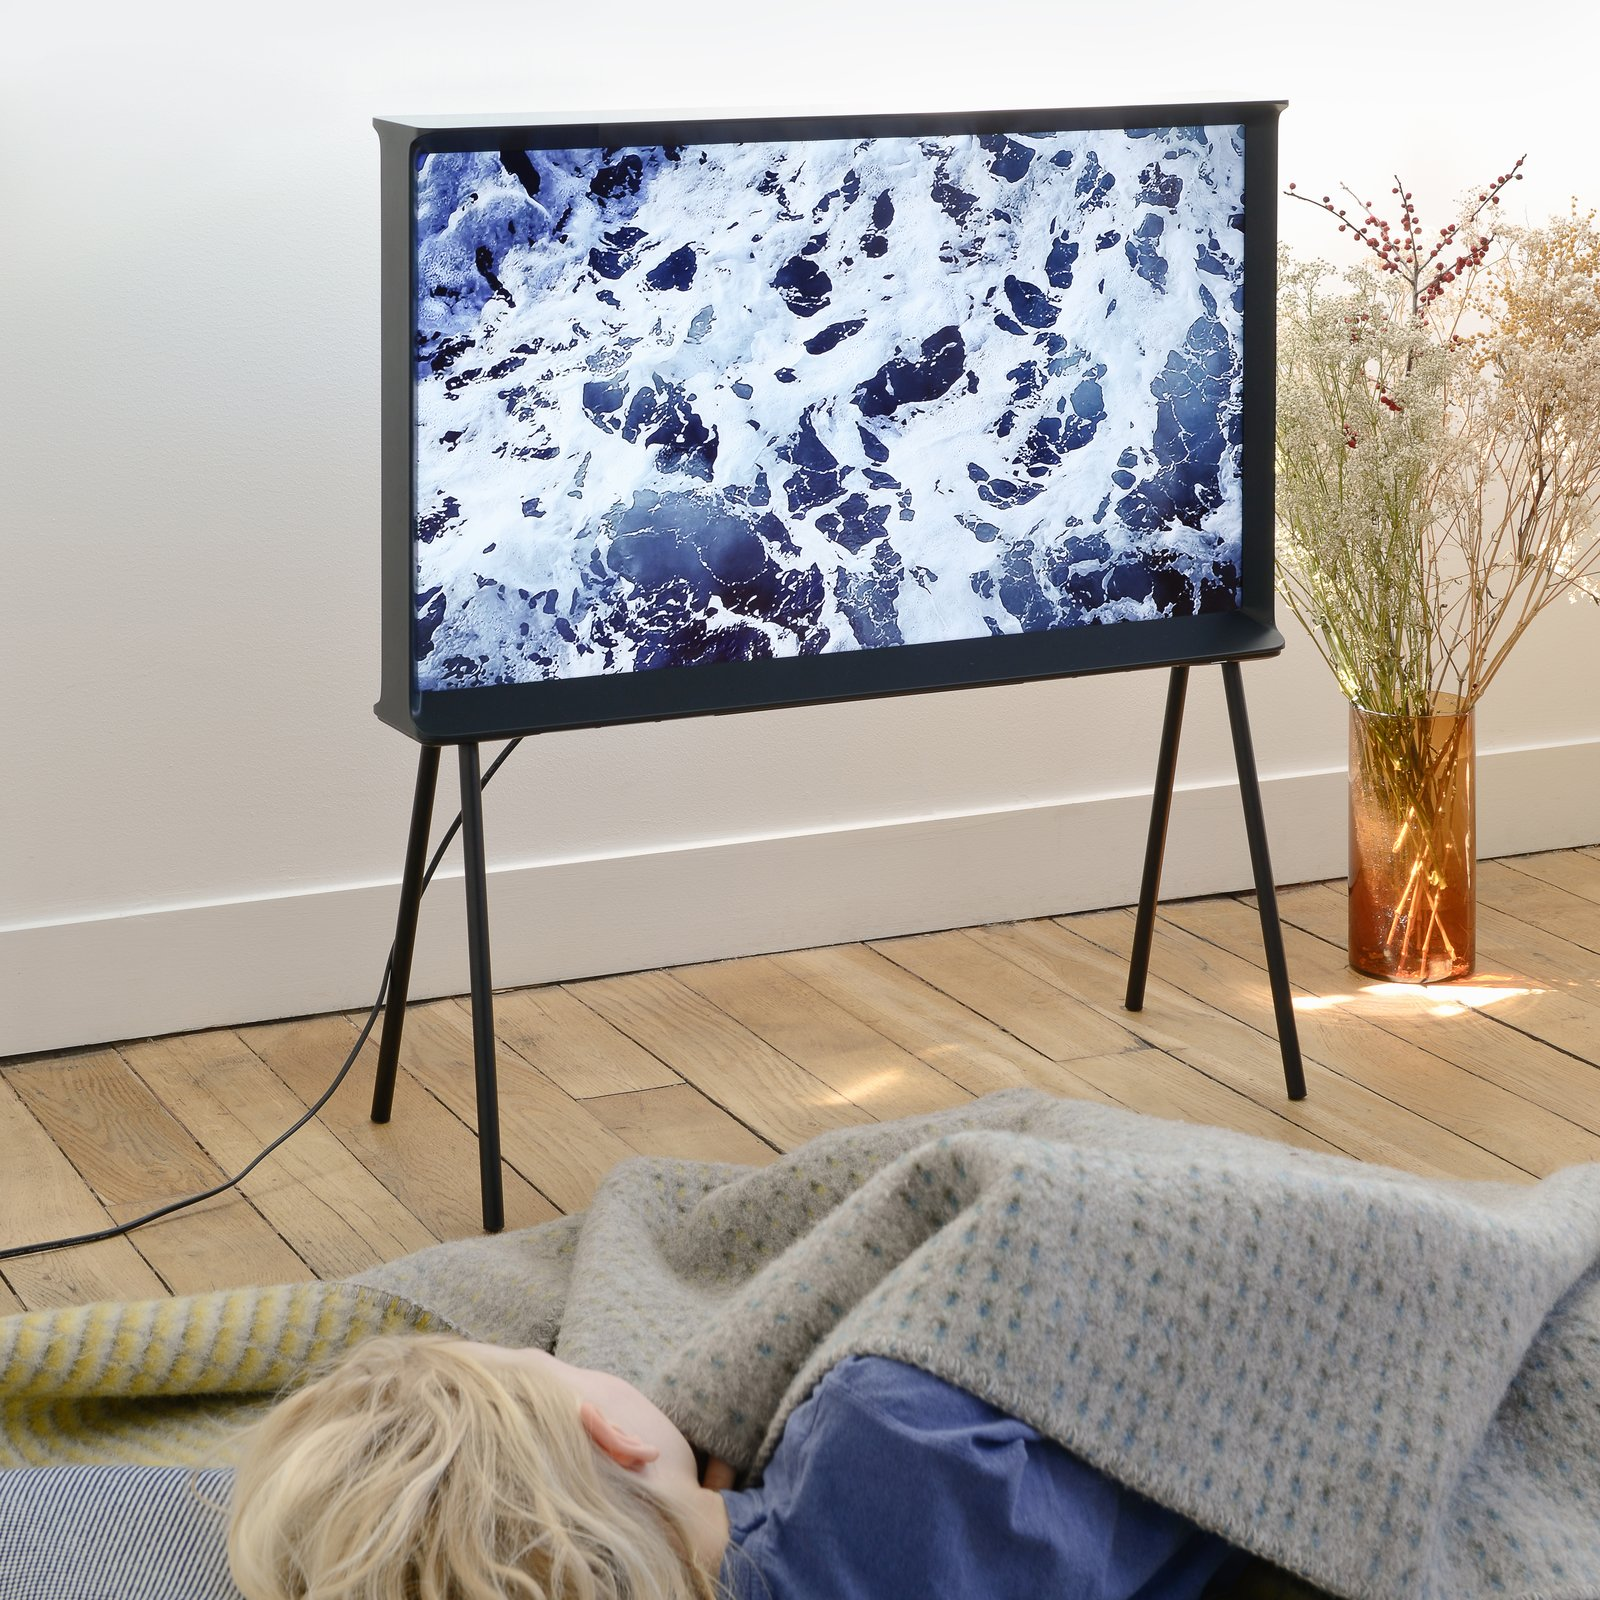 Photo 2 of 4 in The Bouroullec Brothers Turn Back the Dial to When TVs Were Furniture